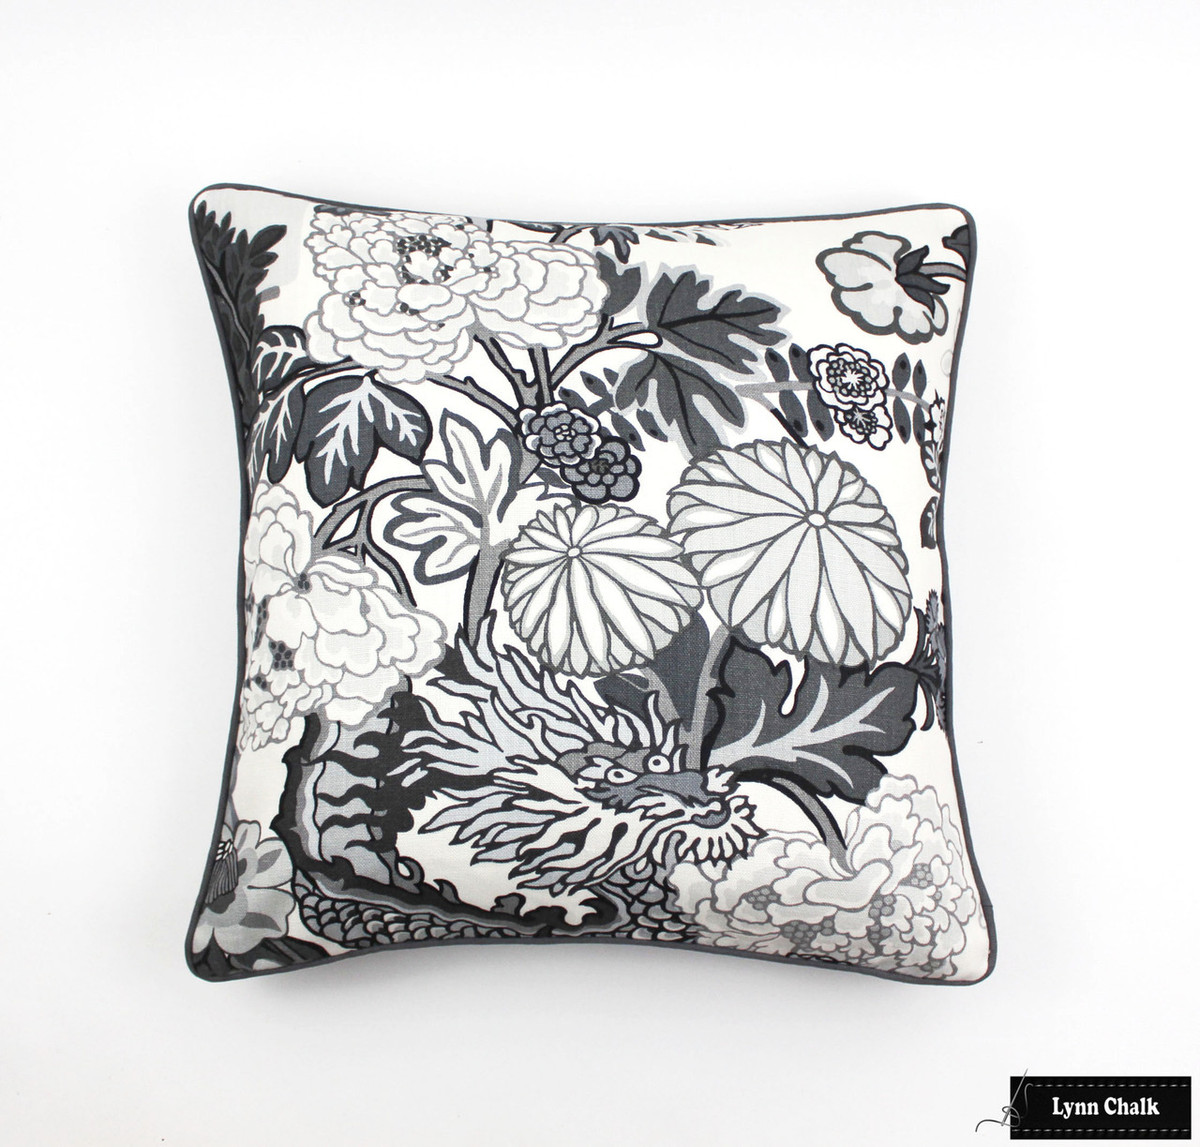 schumacher chiang mai dragon pillows in smoke with charcoal grey welting 2 pillow minimum order